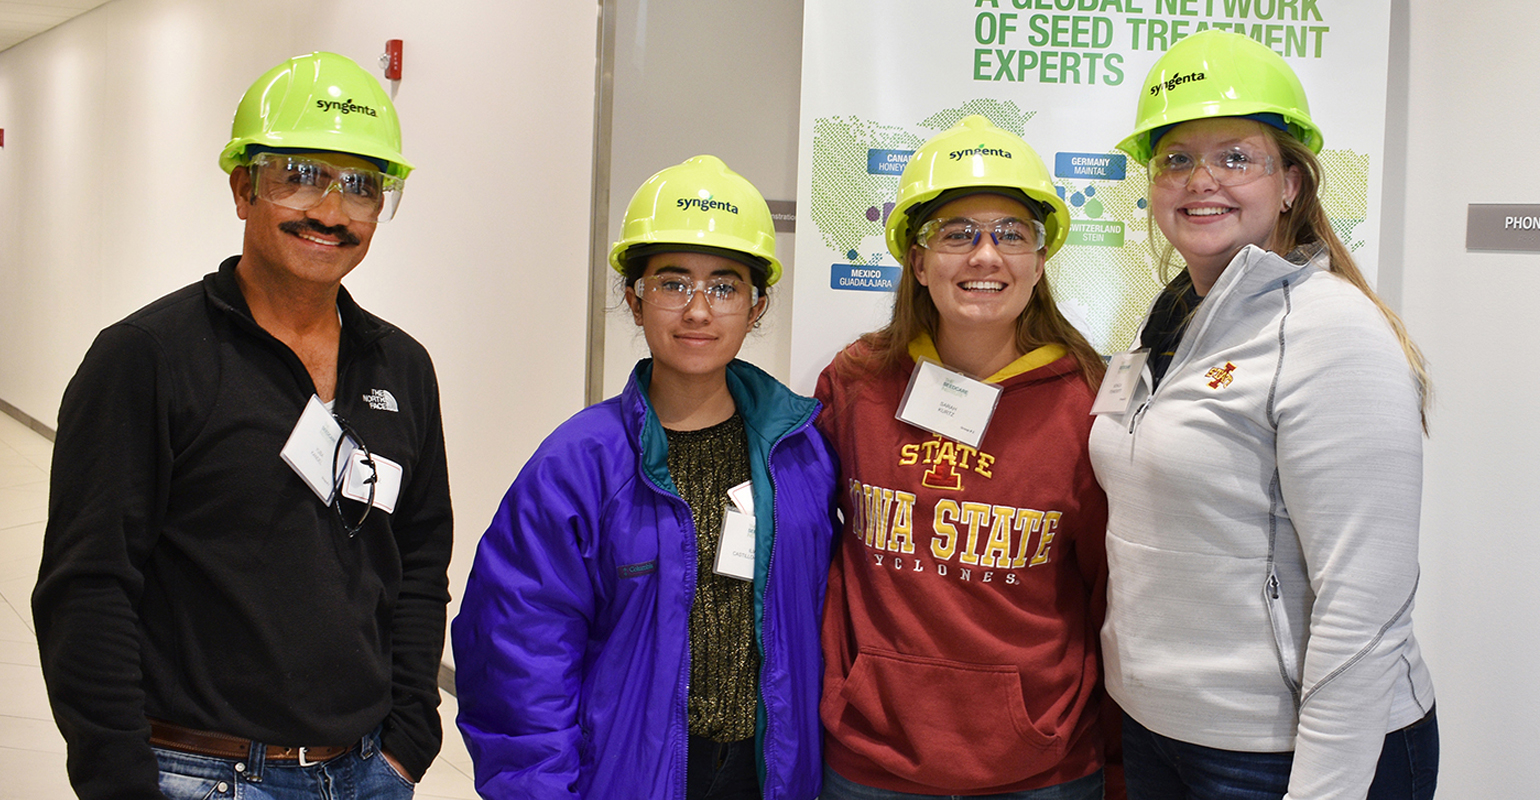 Touring the Syngenta seed research facility recently were (from left) Yuba Kandel, Iliana Castillo-Machuca, Sarah Kurtz and Monica Pennewitt—representing ISU faculty, students and staff